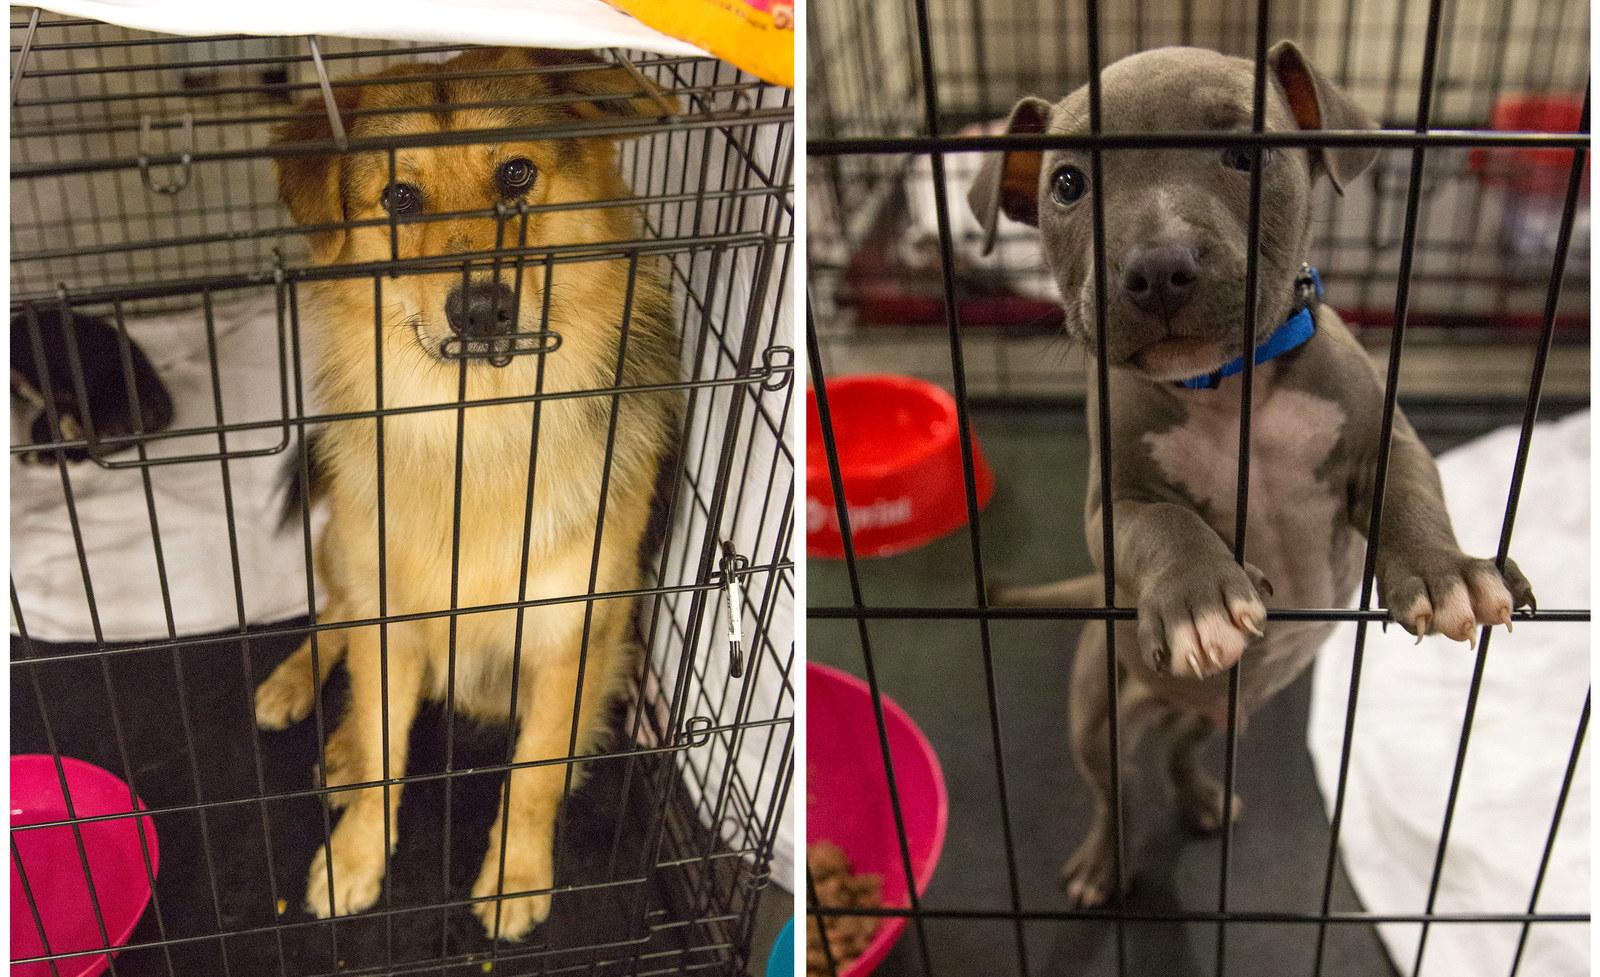 Pets belonging to evacuees sit in crates at the Delco Center in Austin on Aug. 27.